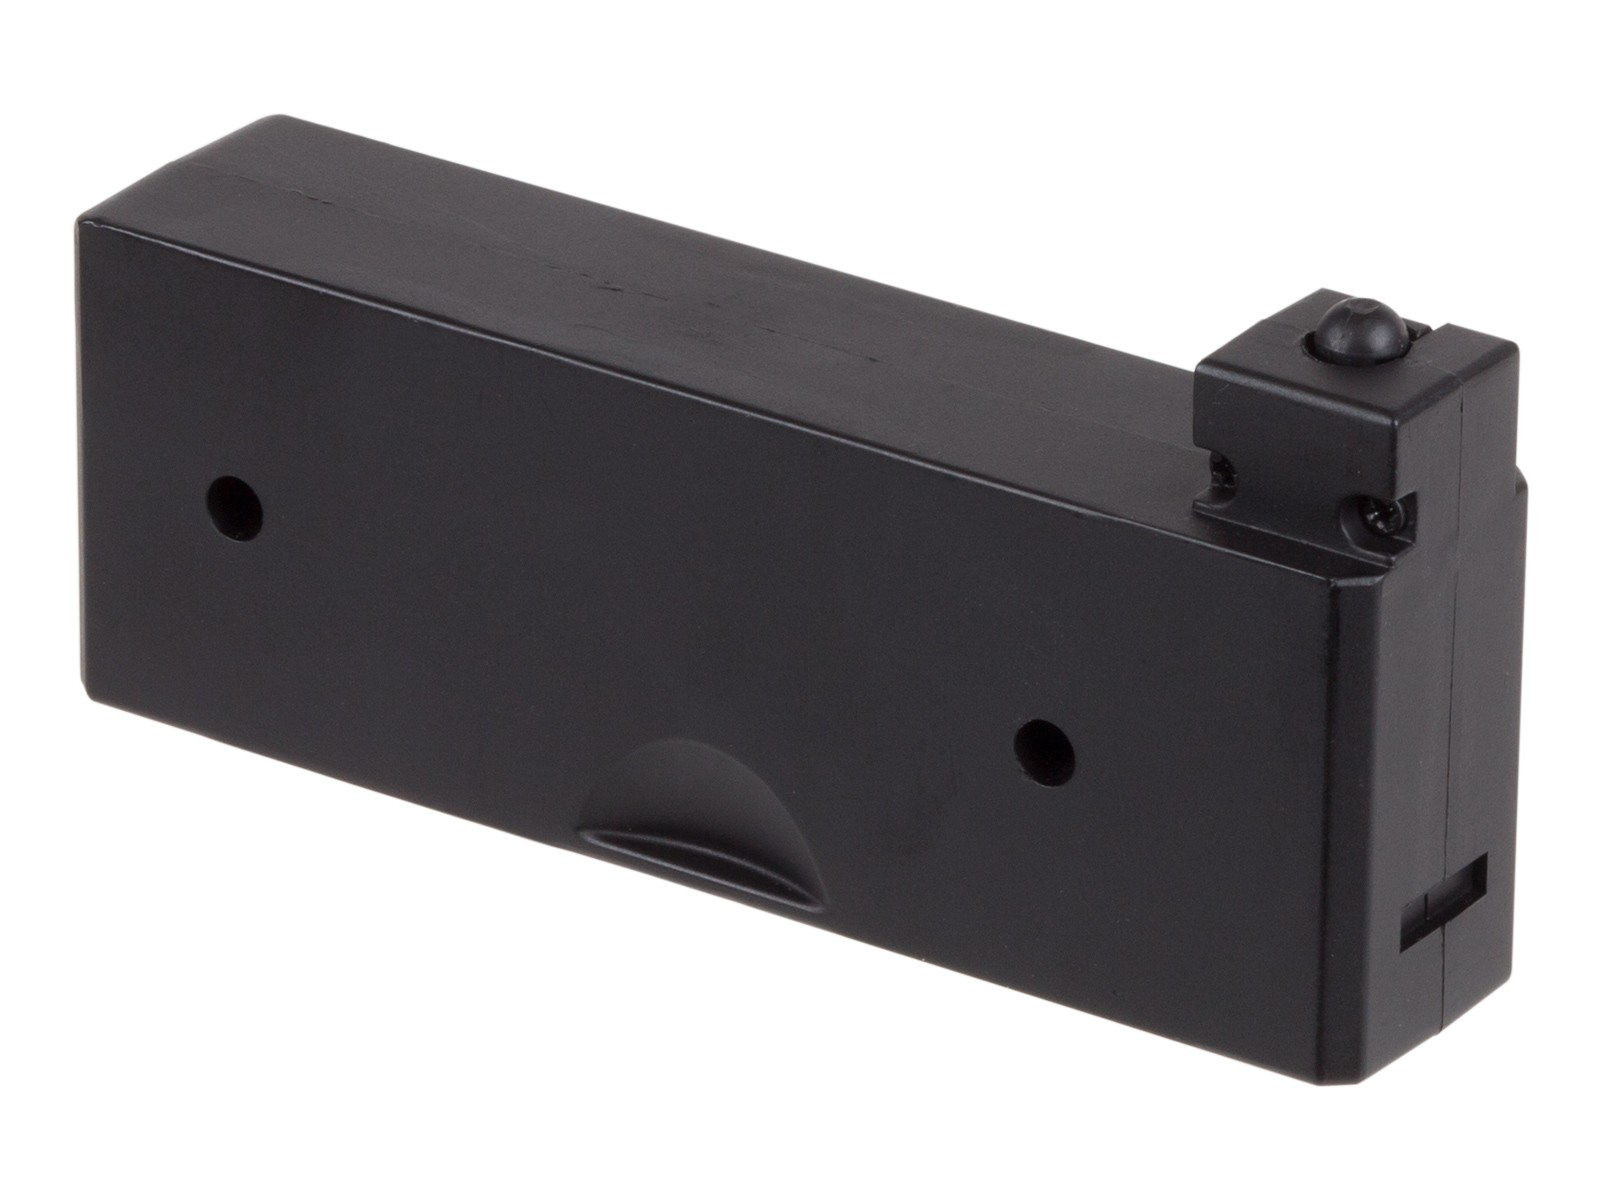 ASG M40A3 Airsoft Spring Rifle Magazine, 27 Rds